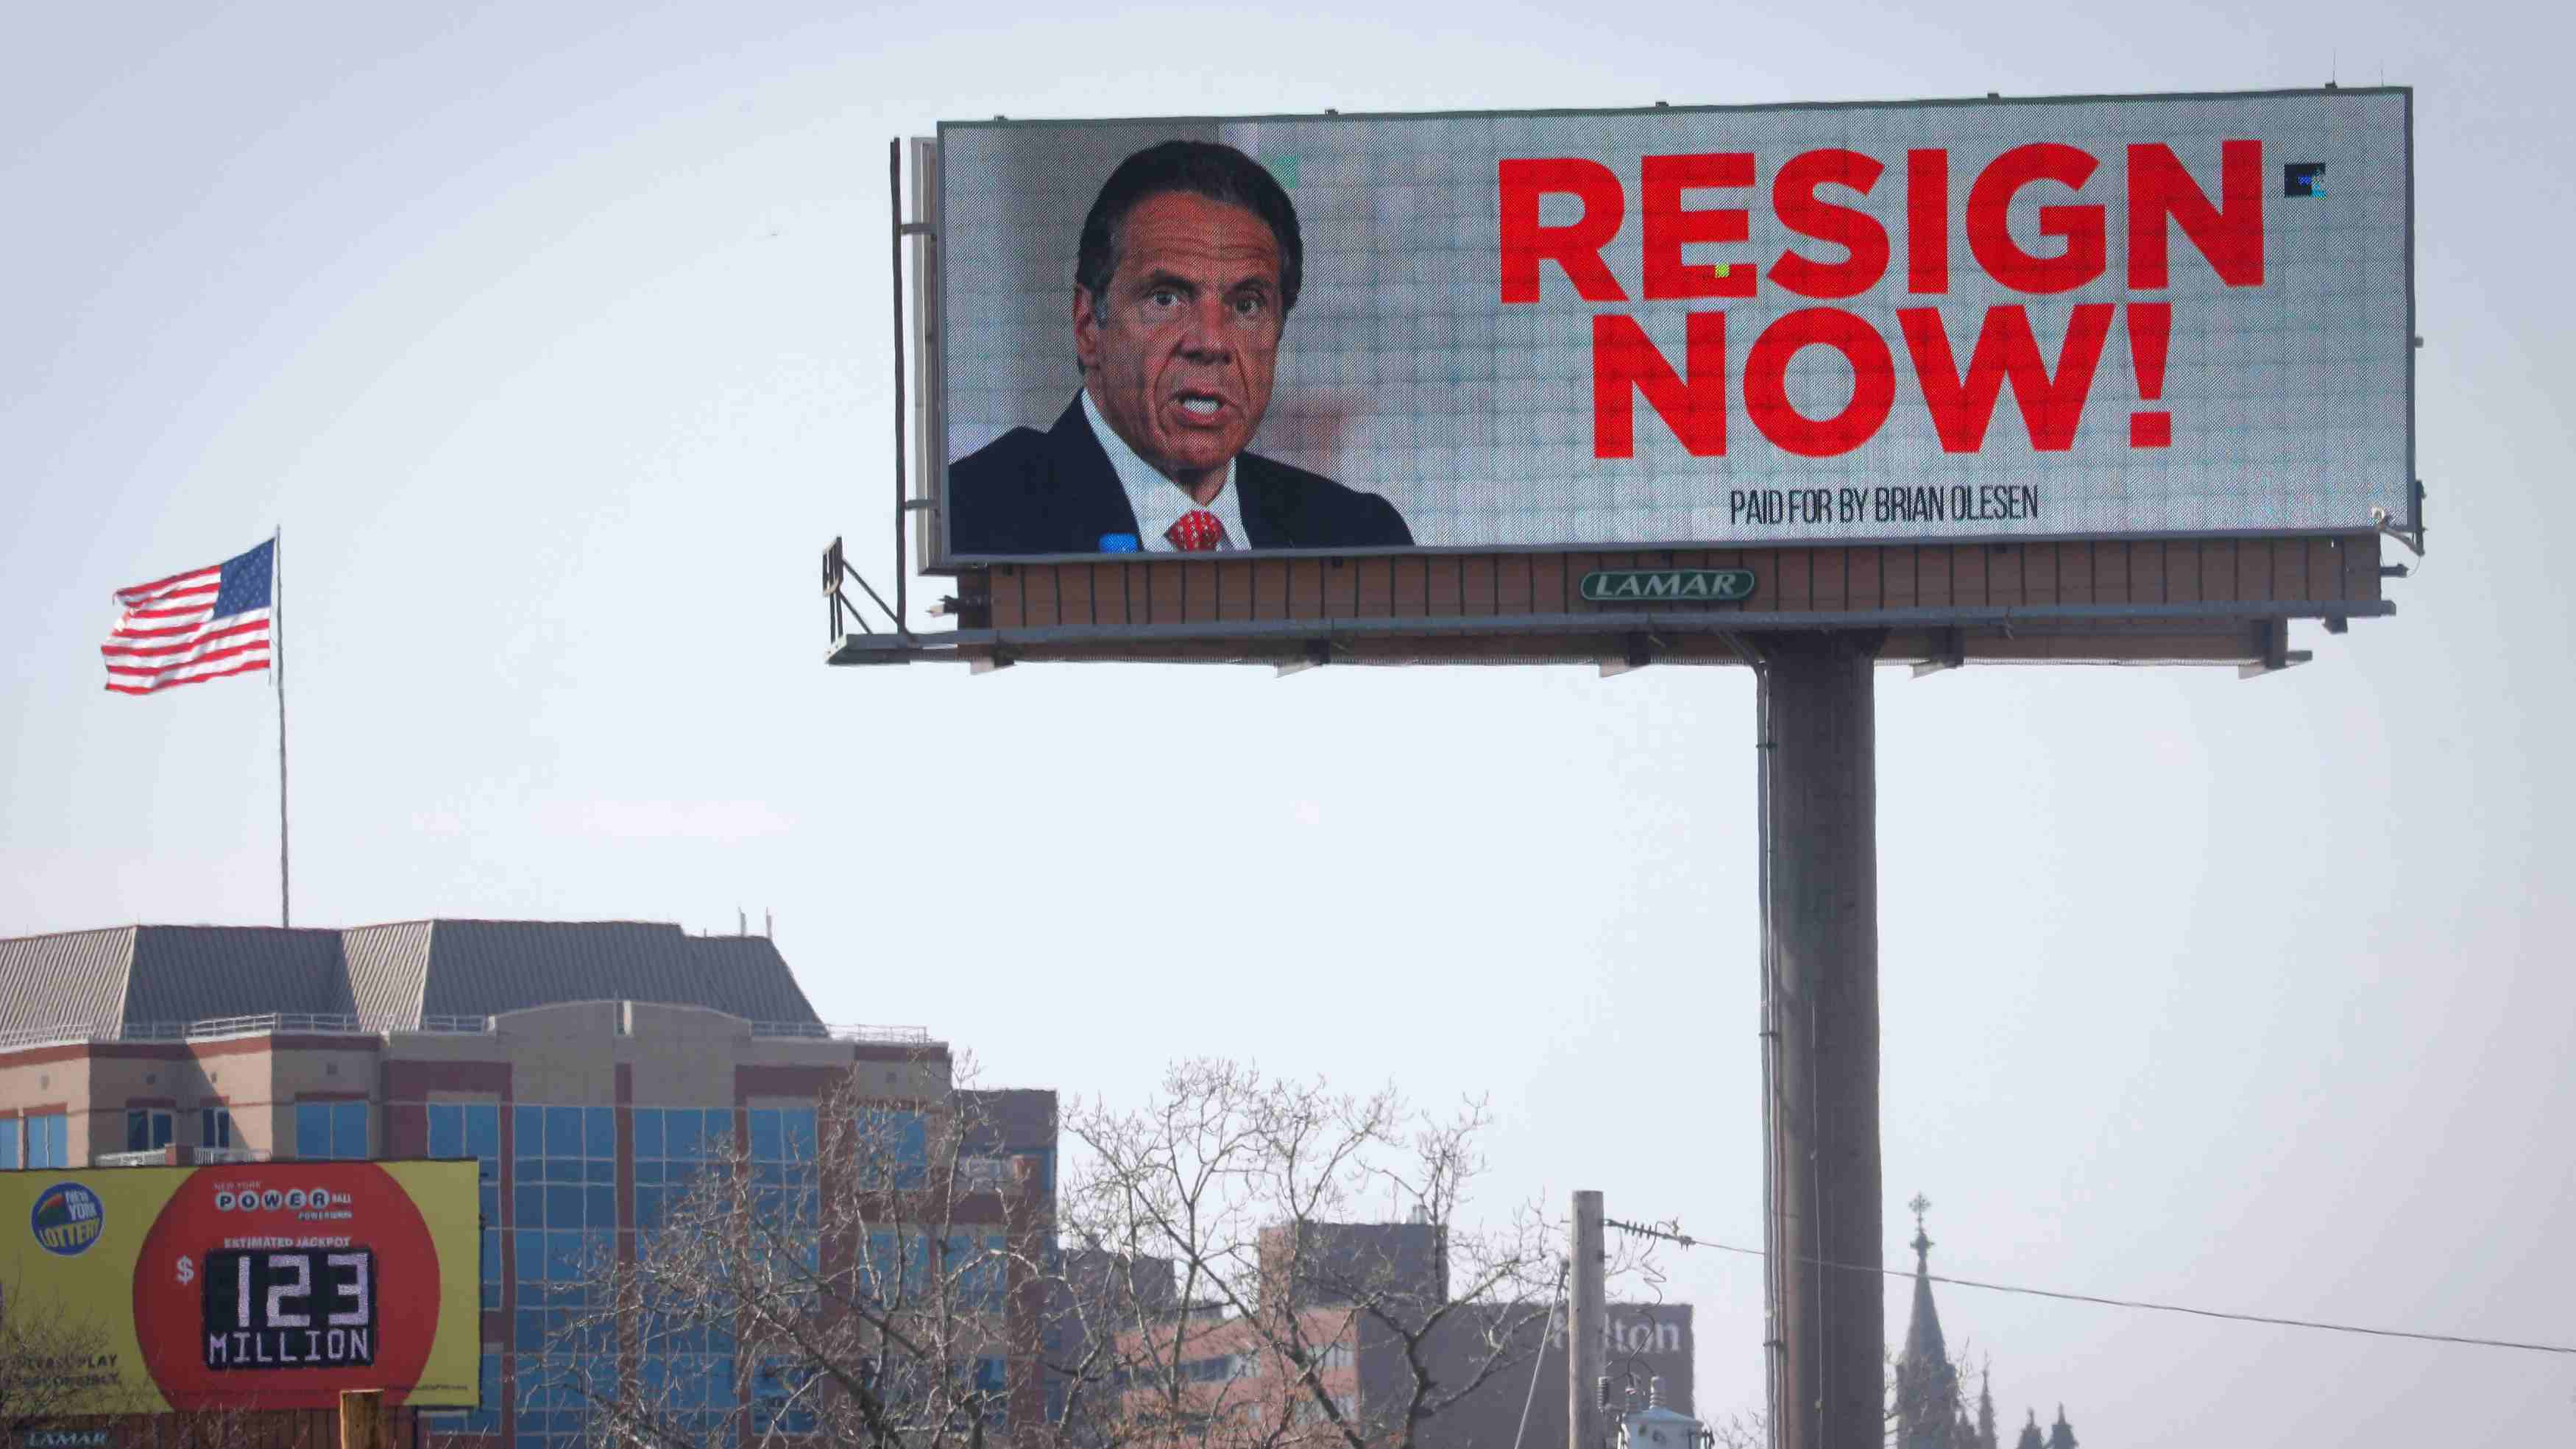 Top NY Democrats urge Cuomo to resign over sexual harassment allegations